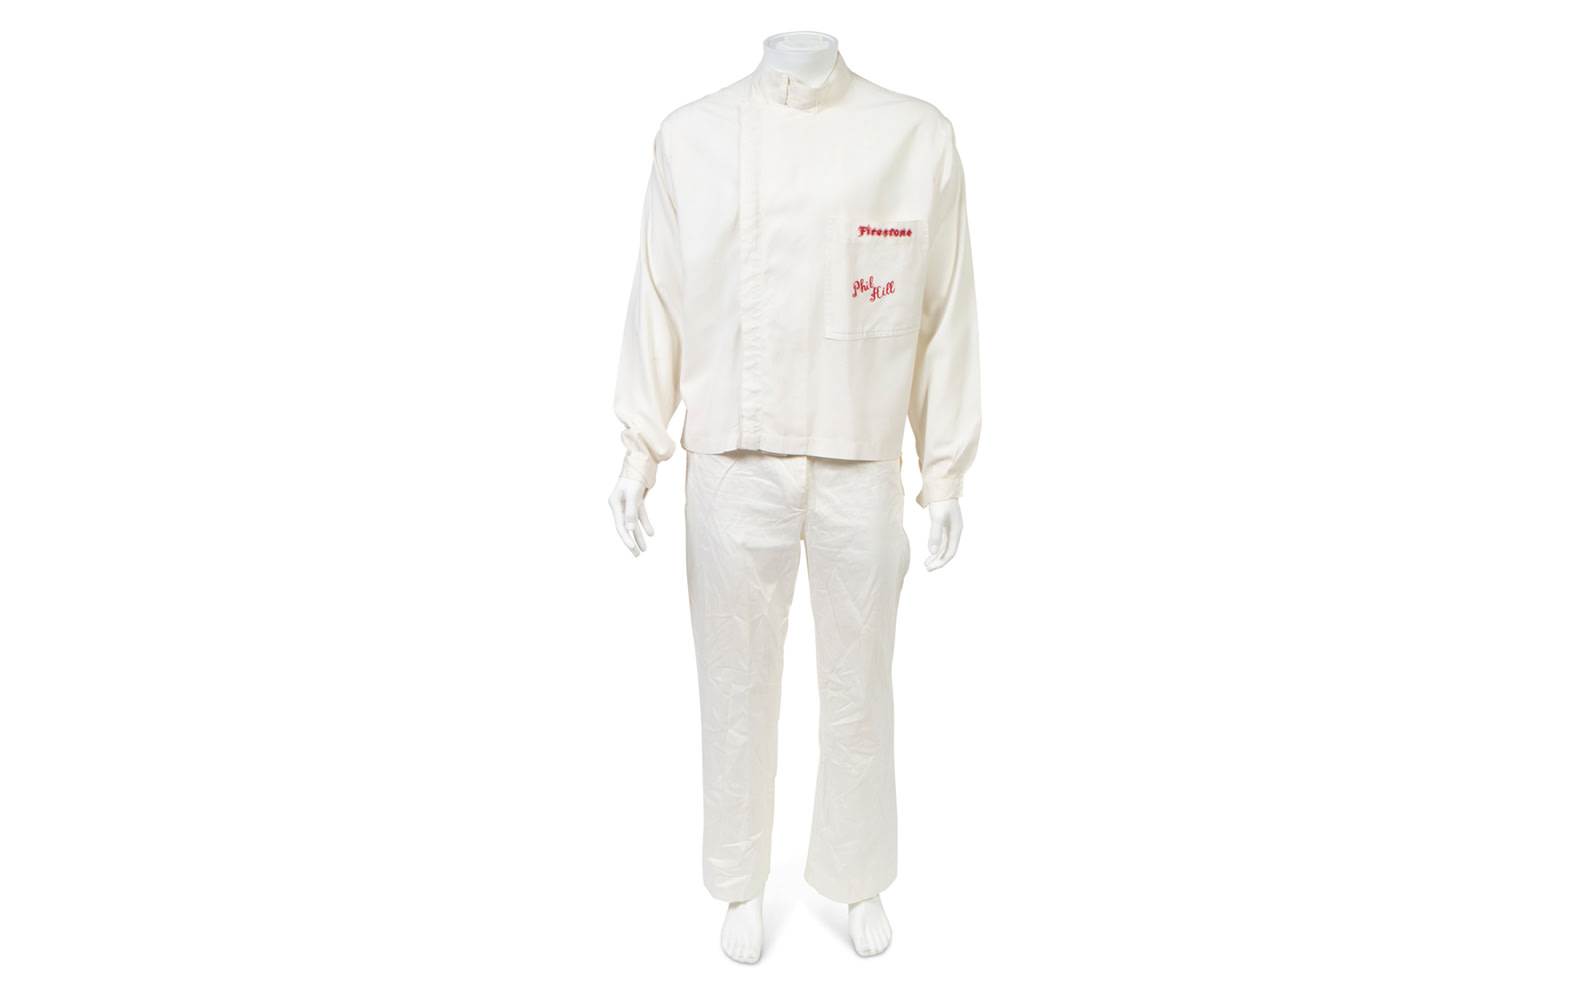 Two-Piece Driving Suit, Used During Phil Hill's Time with the Chaparral Racing Team